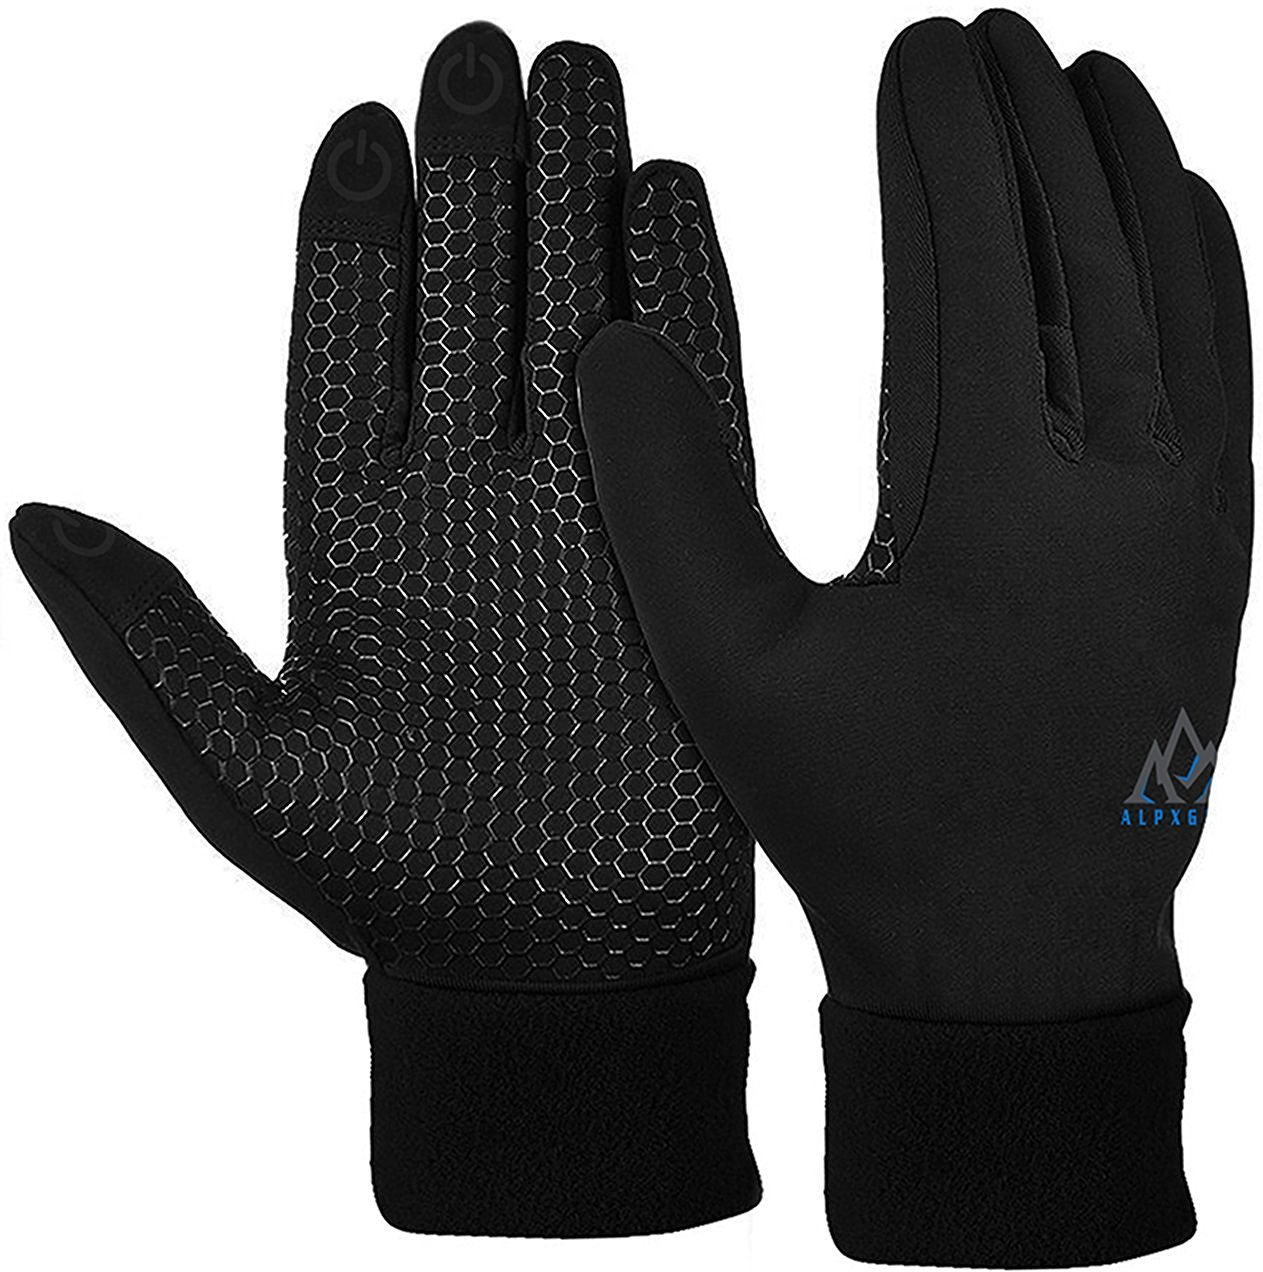 Winter Gloves With Winter Hat By Alpx Gear – Gloves For Women and Men – Winter Gloves Touchscreen SMALL- With Free Winter Hat AlpxGear